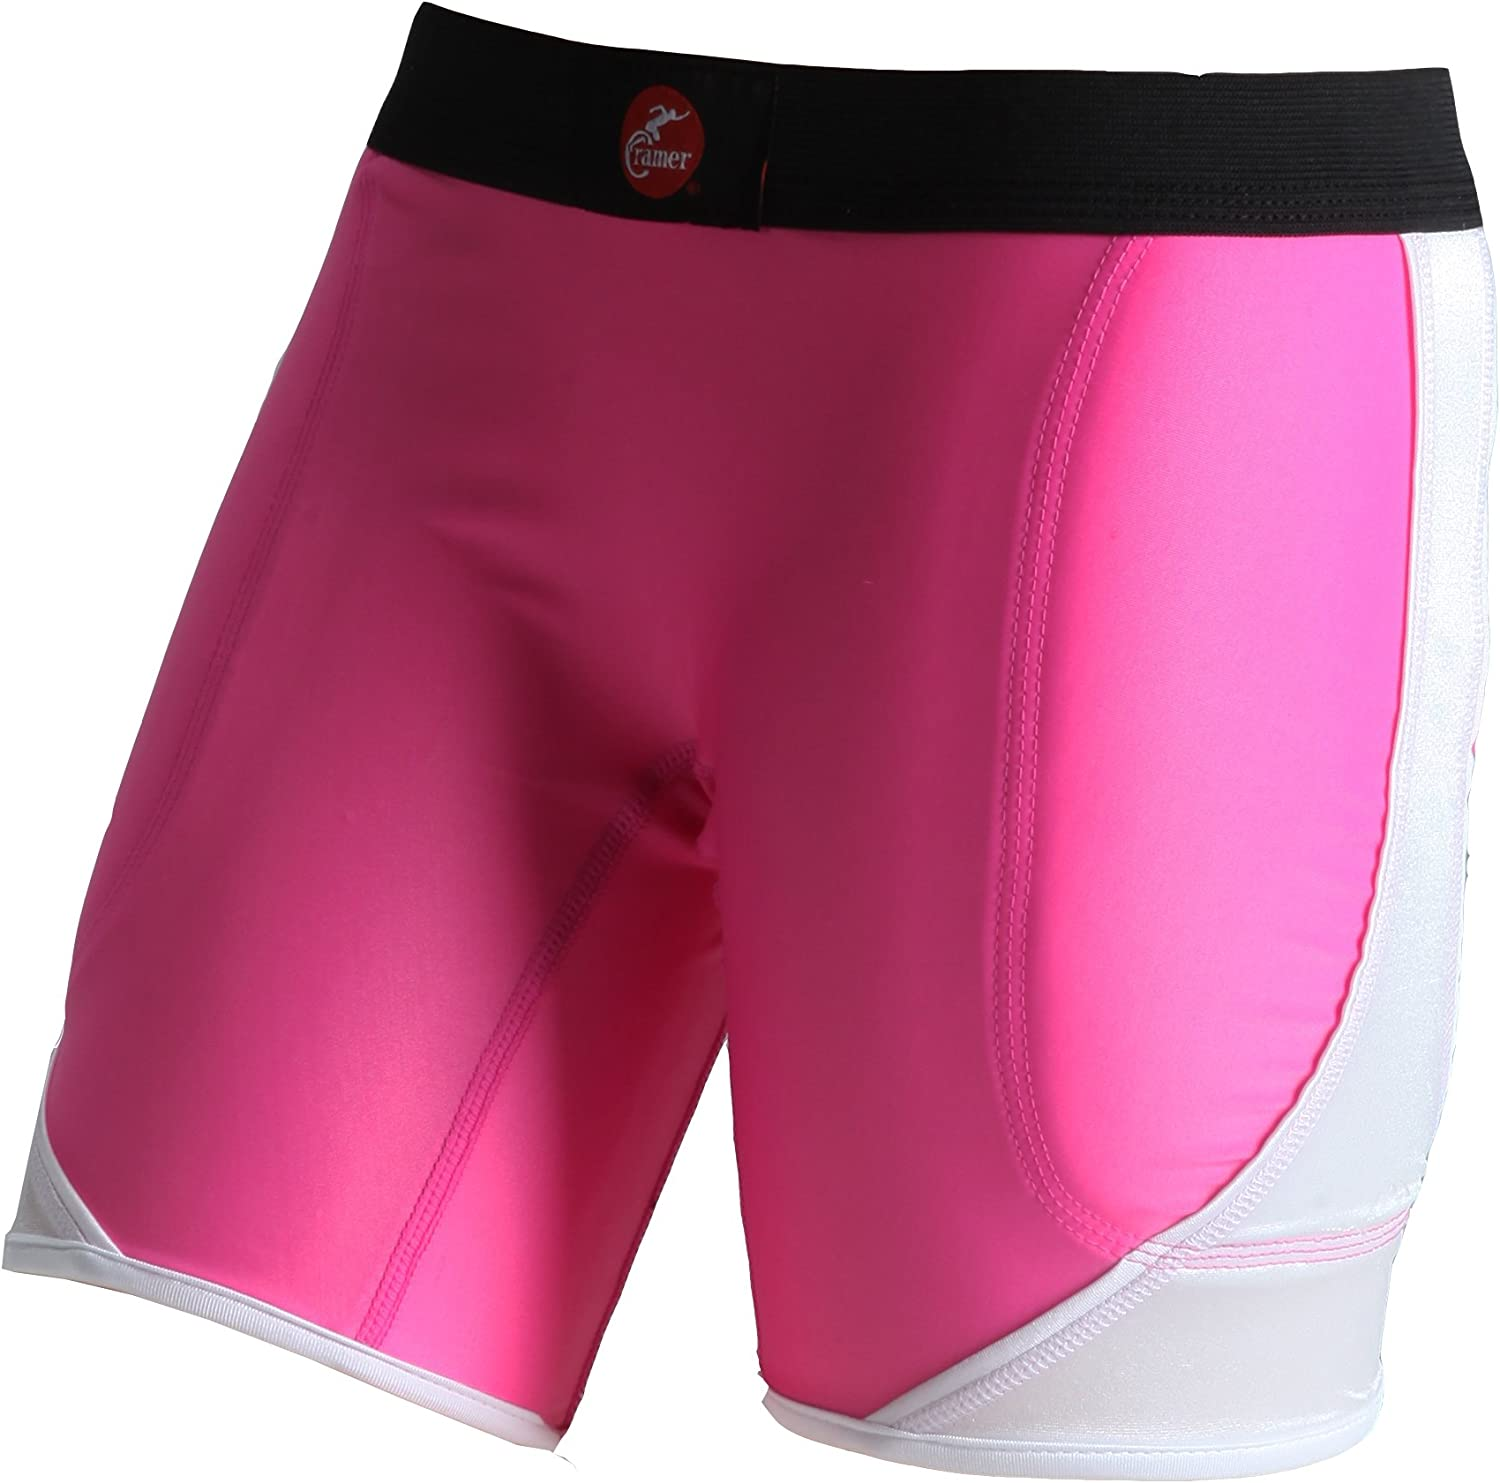 Cramer Women's Crossover Softball Compression Sliding Shorts with Foam Padding, Low-Rise 5 Inch Inseam, Support Prevents Chaffing and Injury During Activity, Pink/White, Large